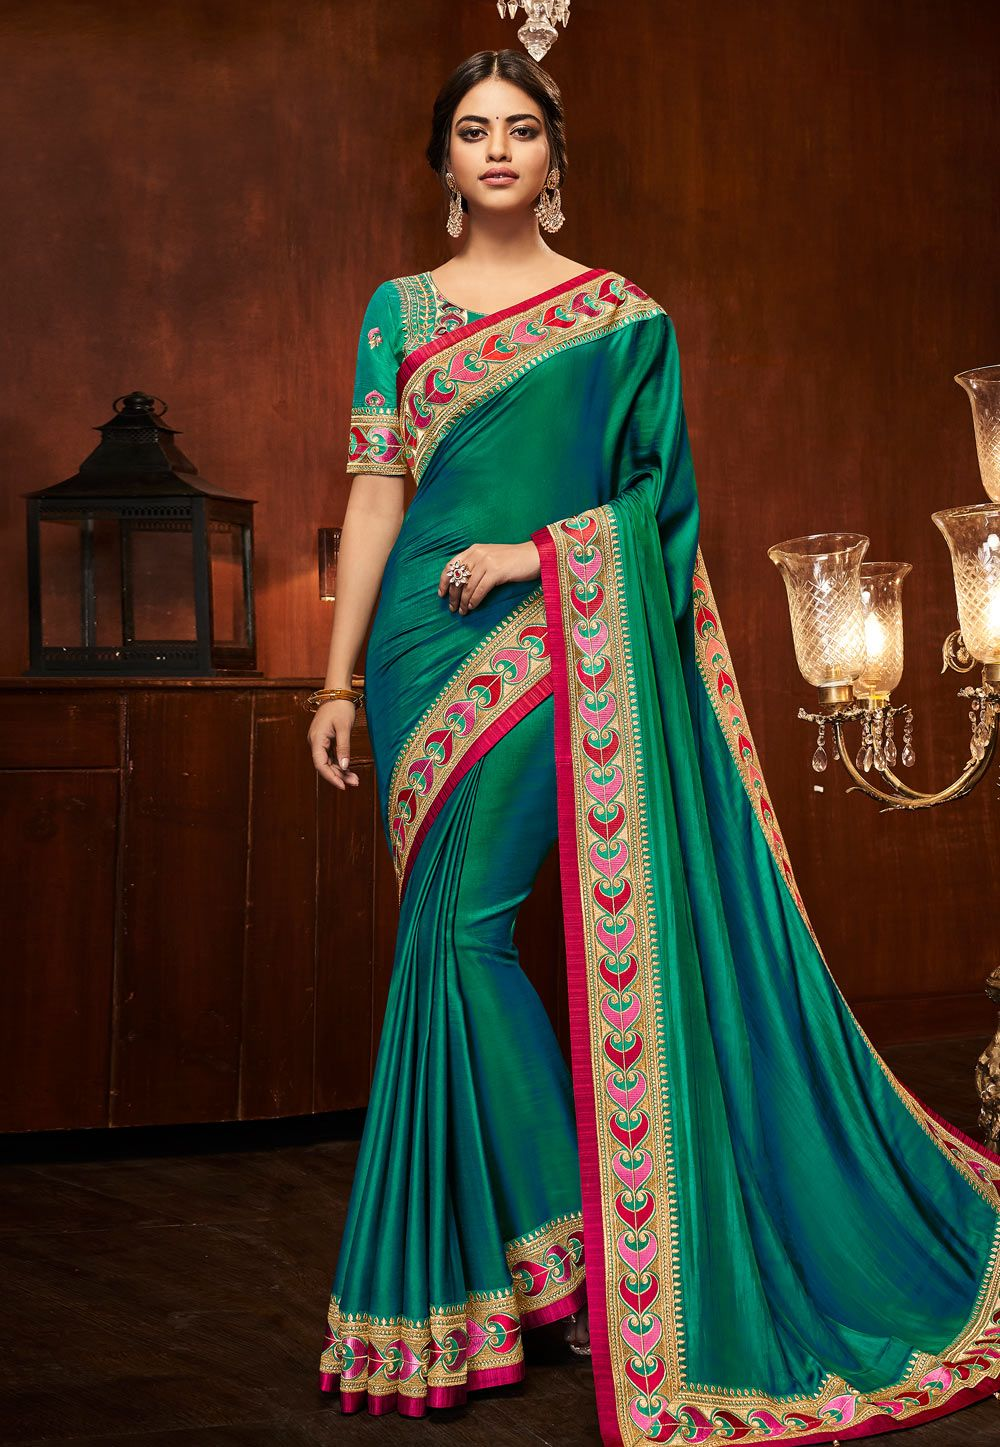 baaa14c5db05c Buy Sea Green Silk Saree With Embroidered Blouse 153860 with blouse online  at lowest price from vast collection of sarees at Indianclothstore.com.